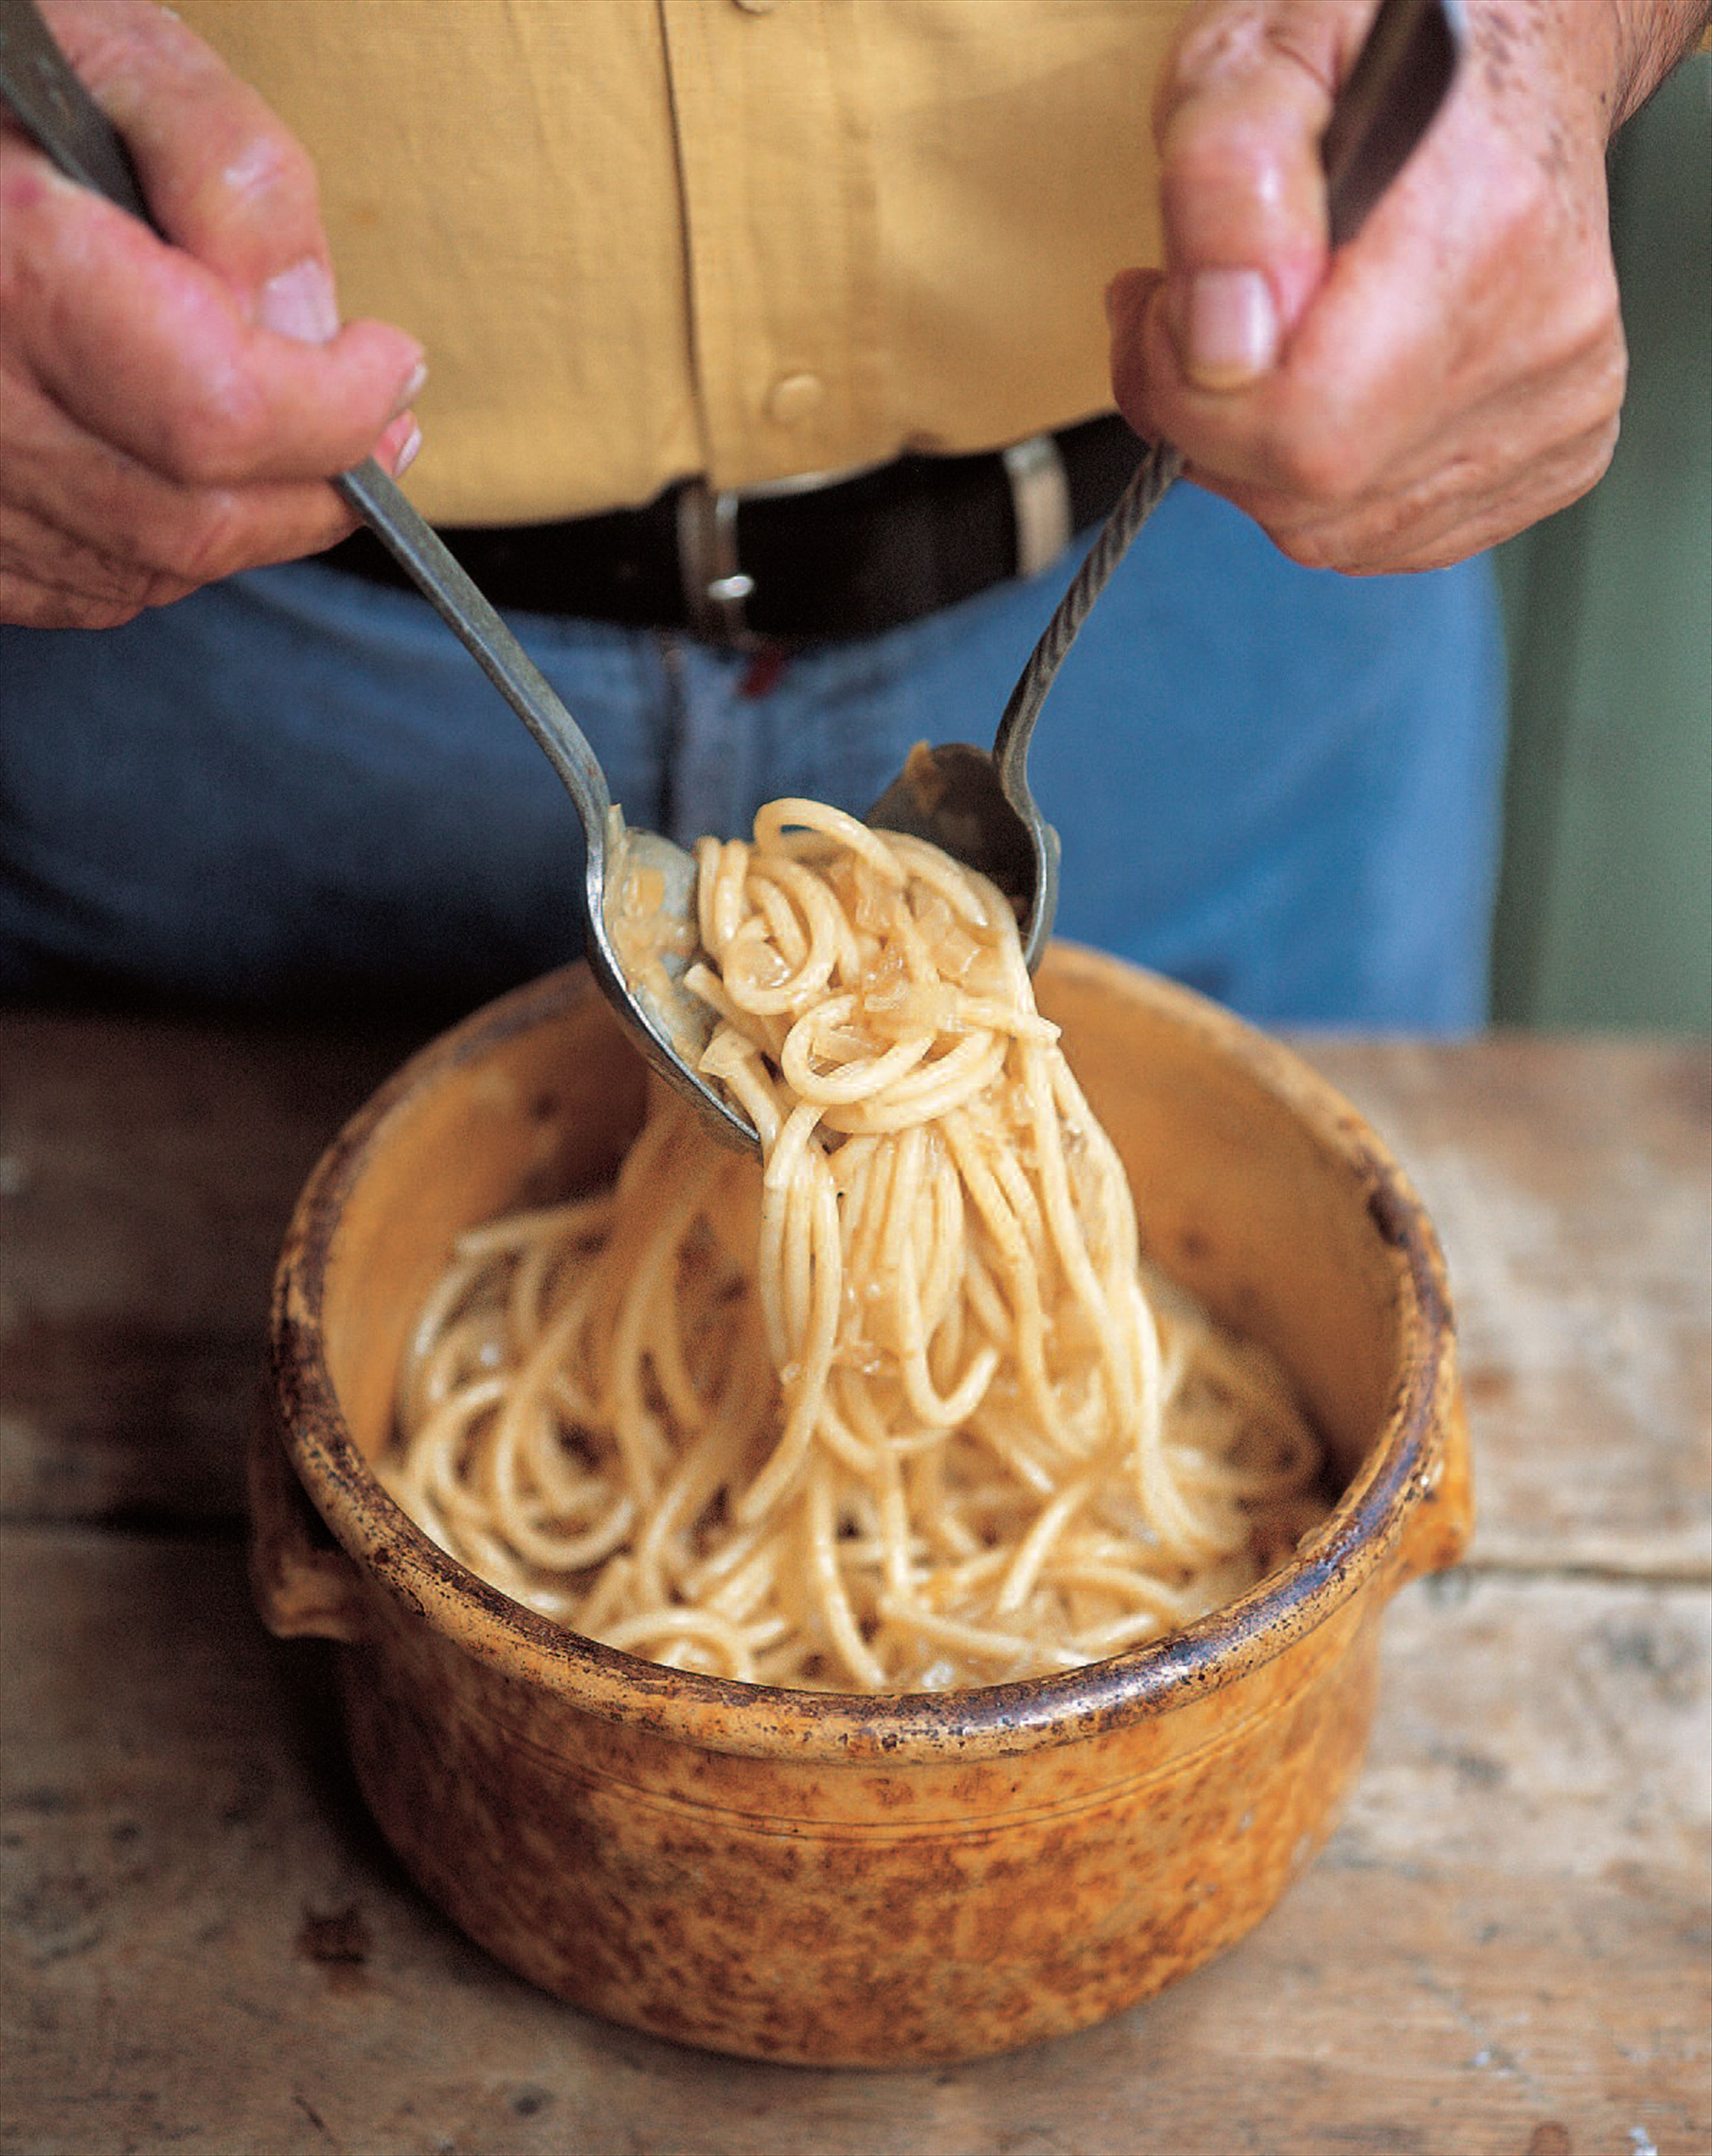 Giant spaghetti with onion and anchovy sauce